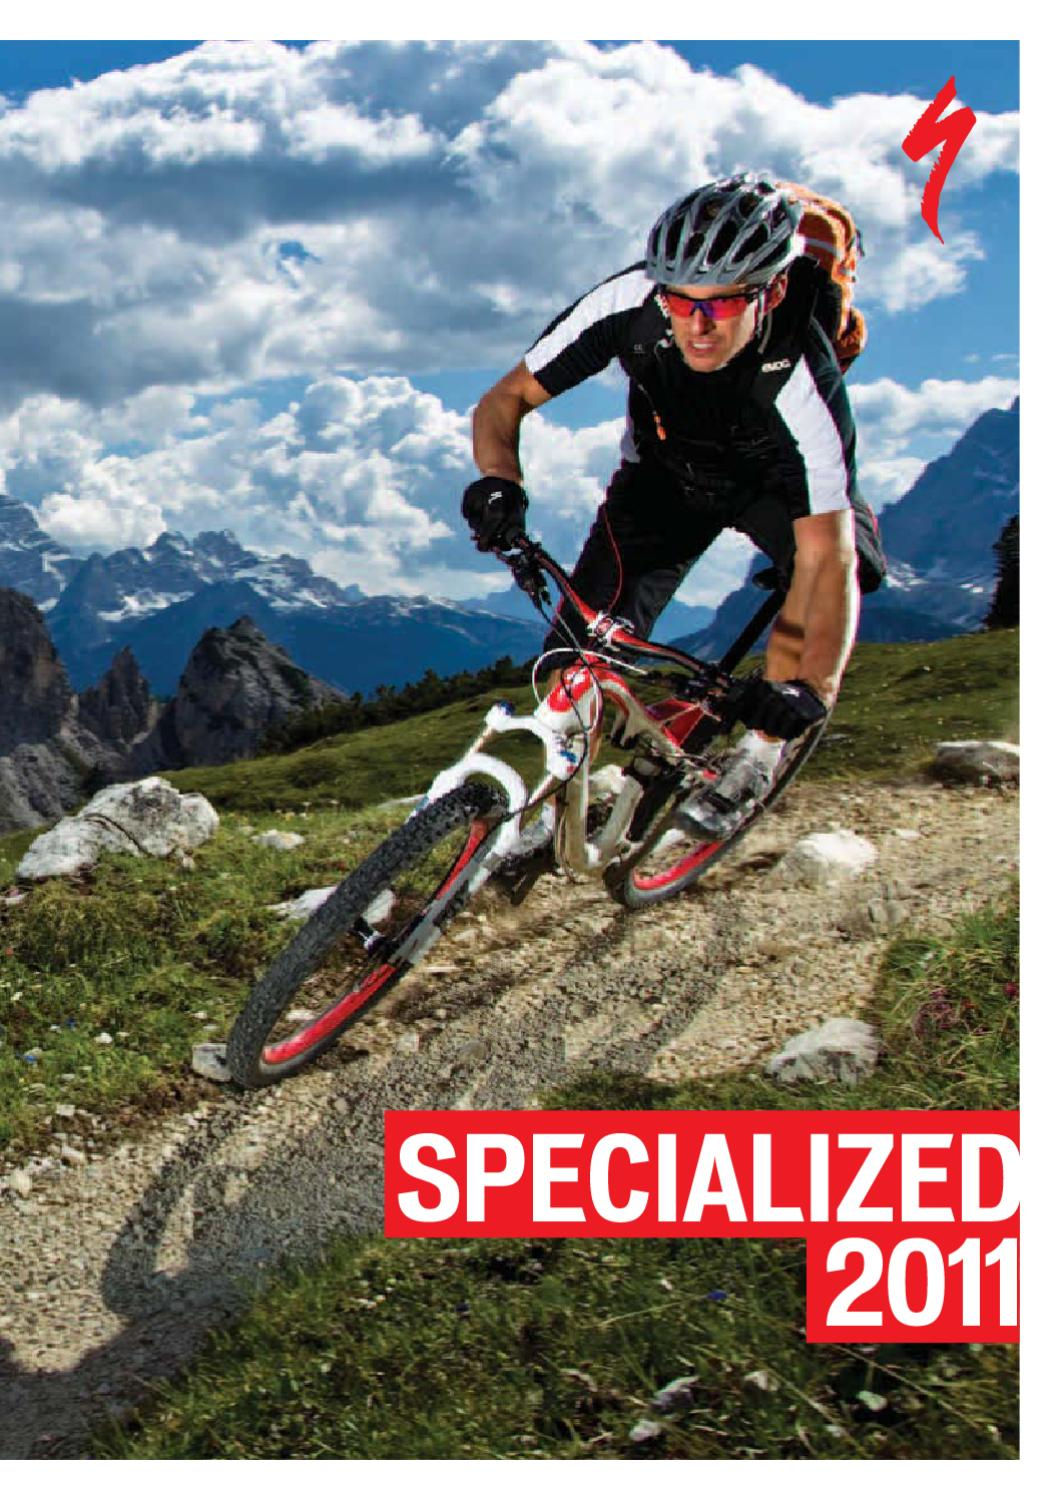 2011 Specialized UK Brochure Complete V2 by David Brown - issuu